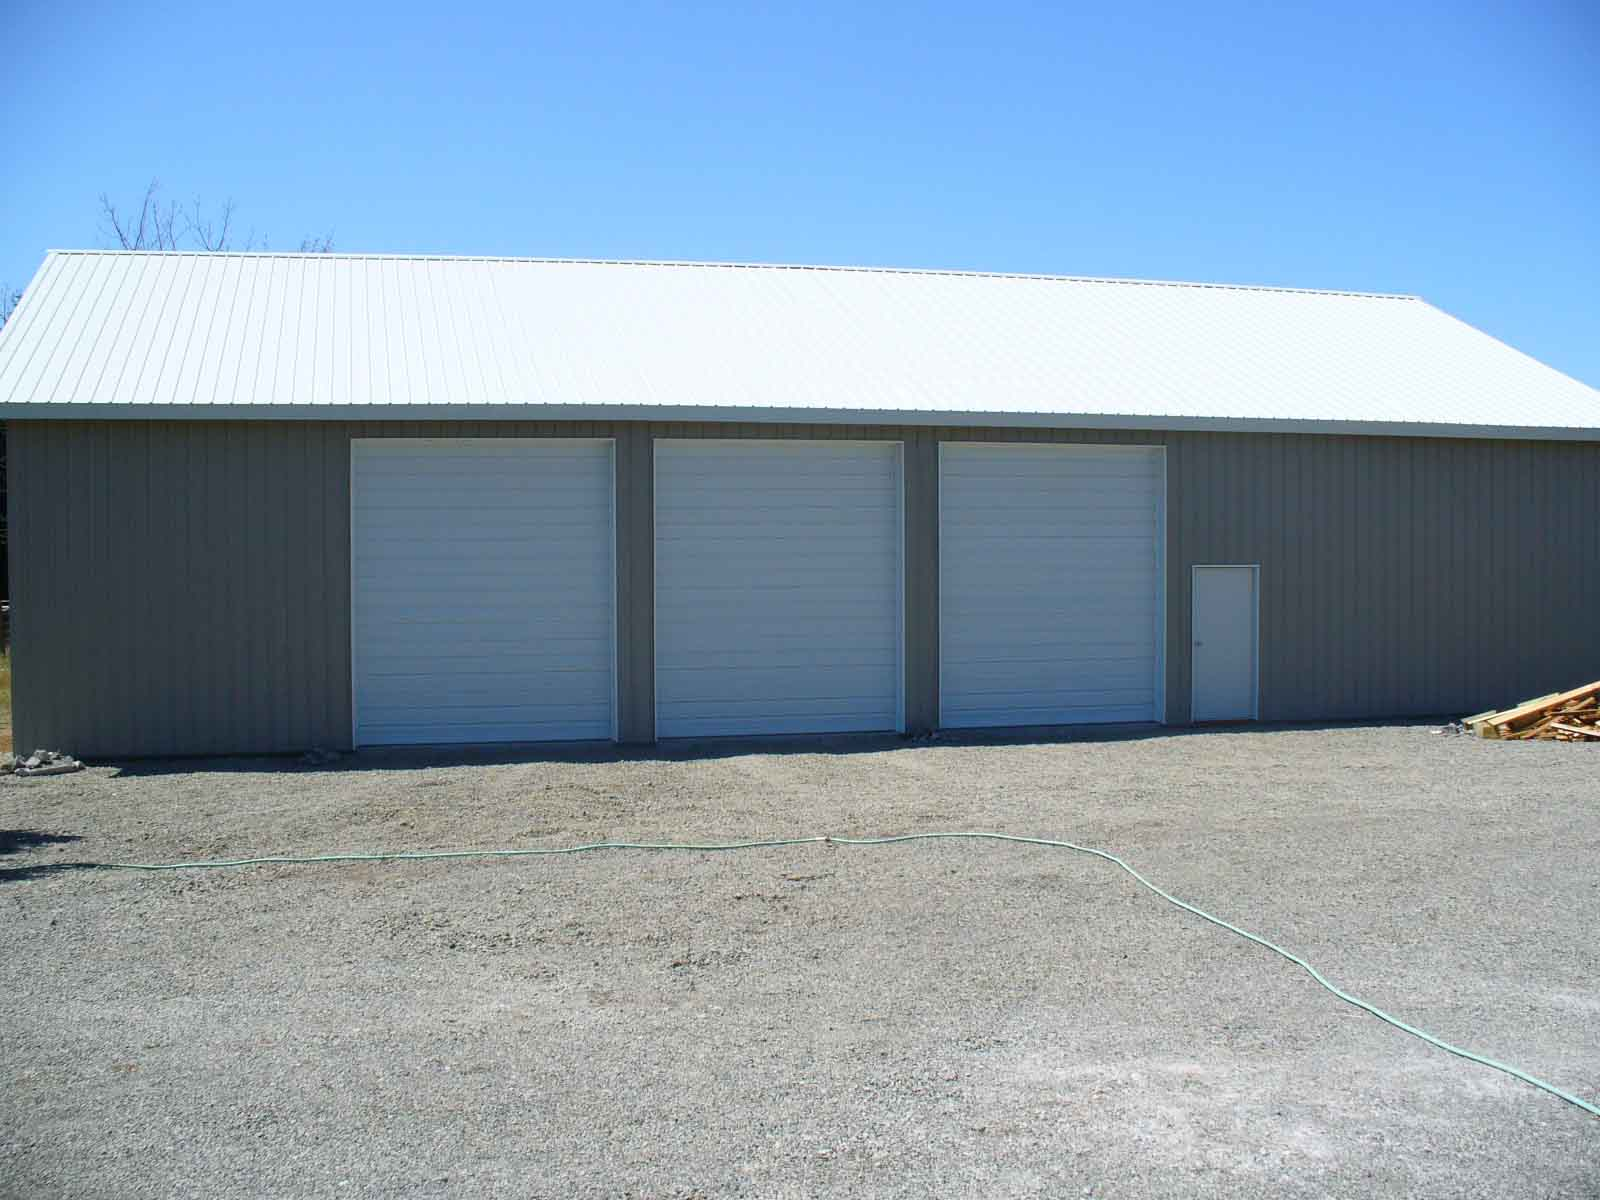 72'x48'x16' with 14' high overhead doors